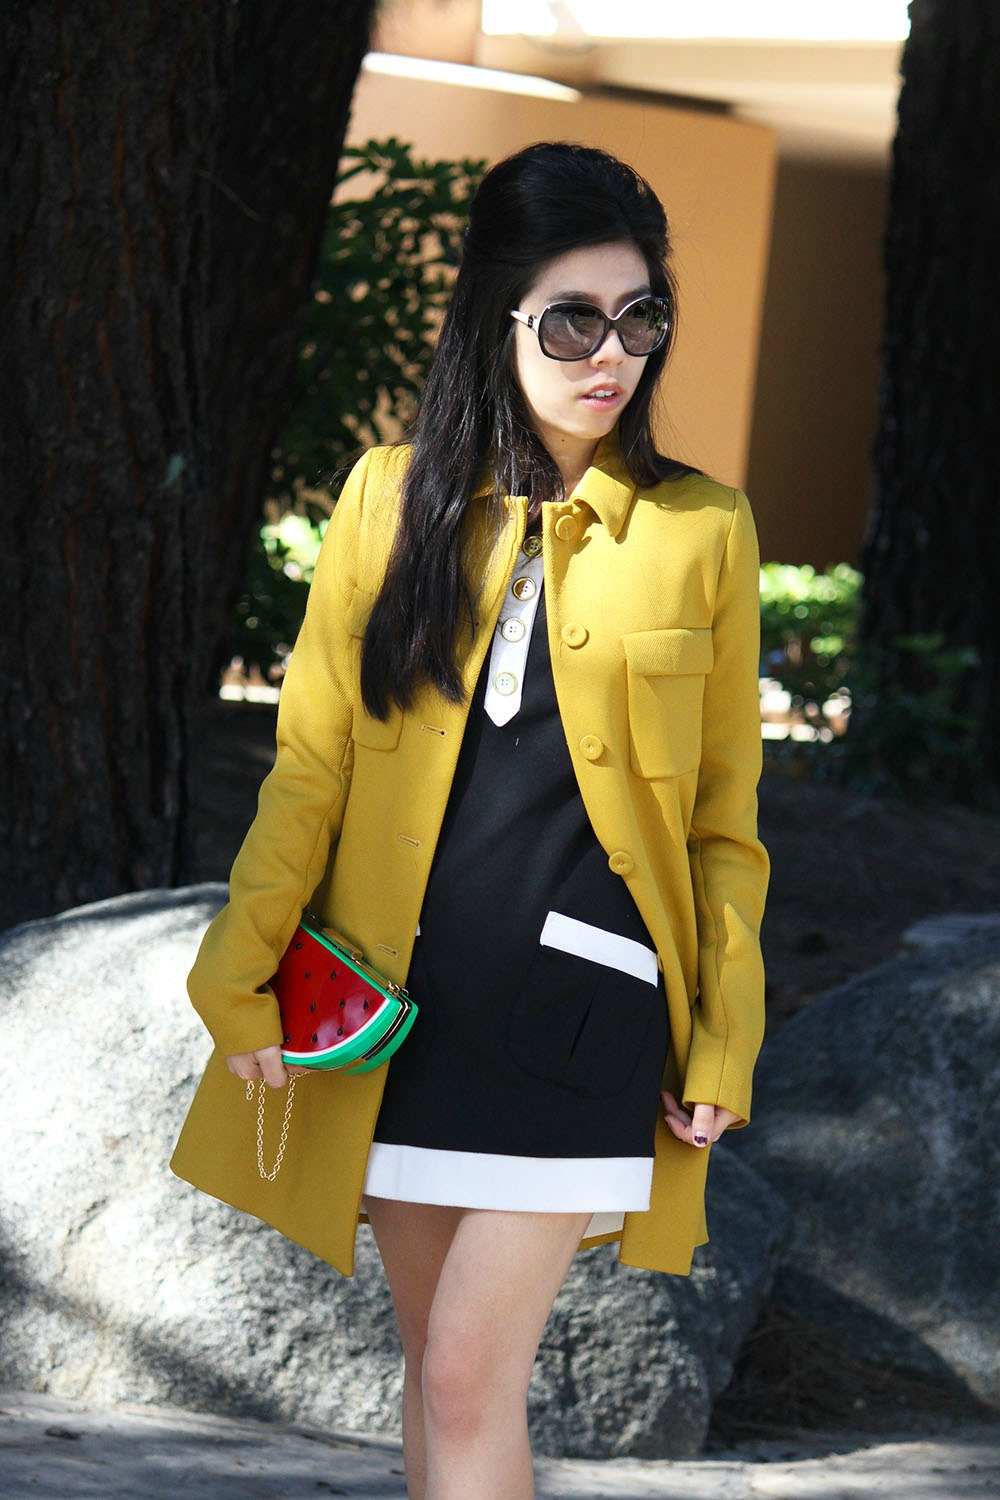 Adrienne Nguyen_Invictus_Zara Mustard Military Coat_What to Wear to a Busines Casual Event